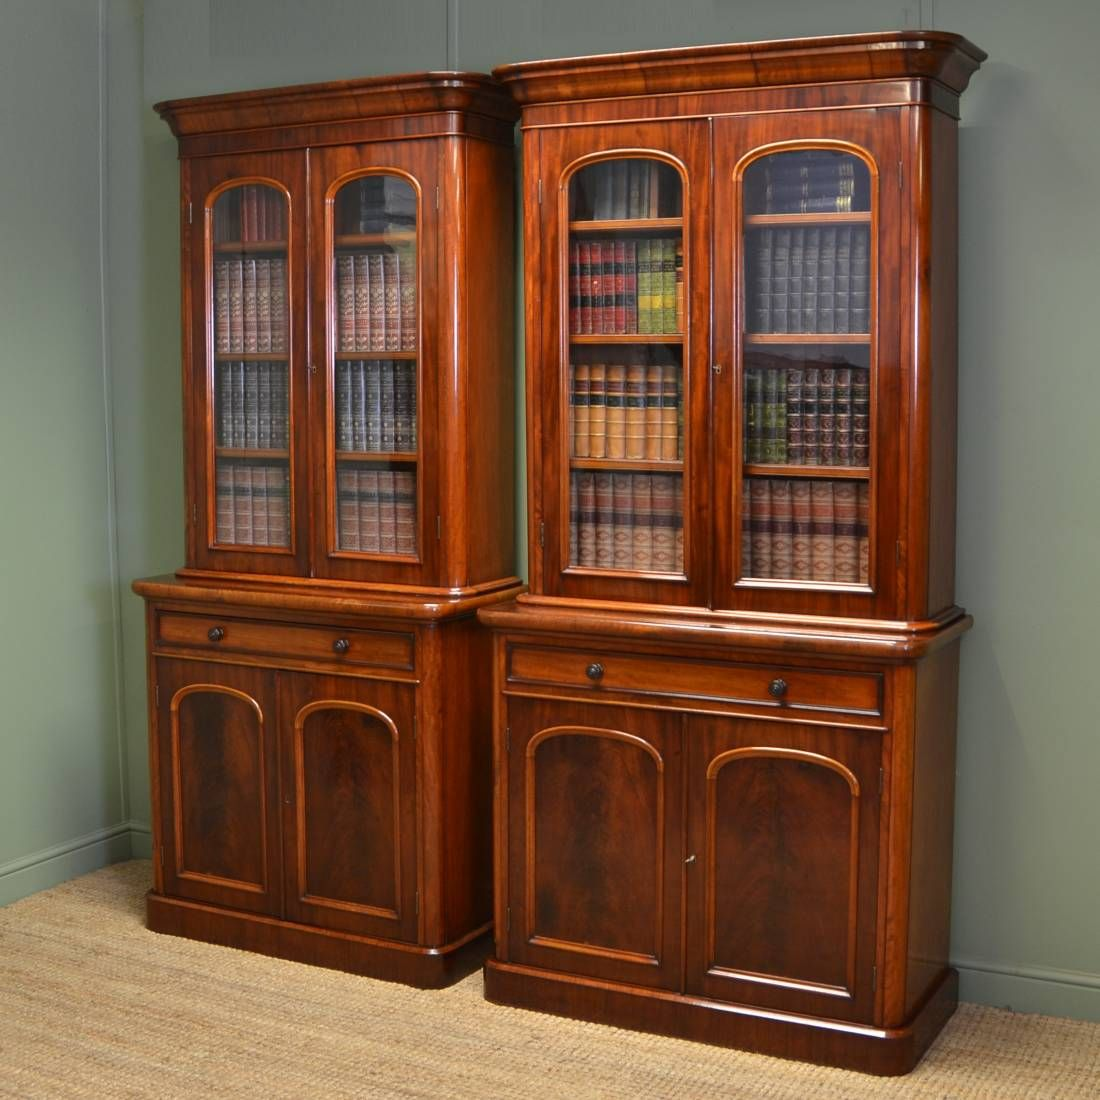 Antique Bookcases For Sale - Buy on